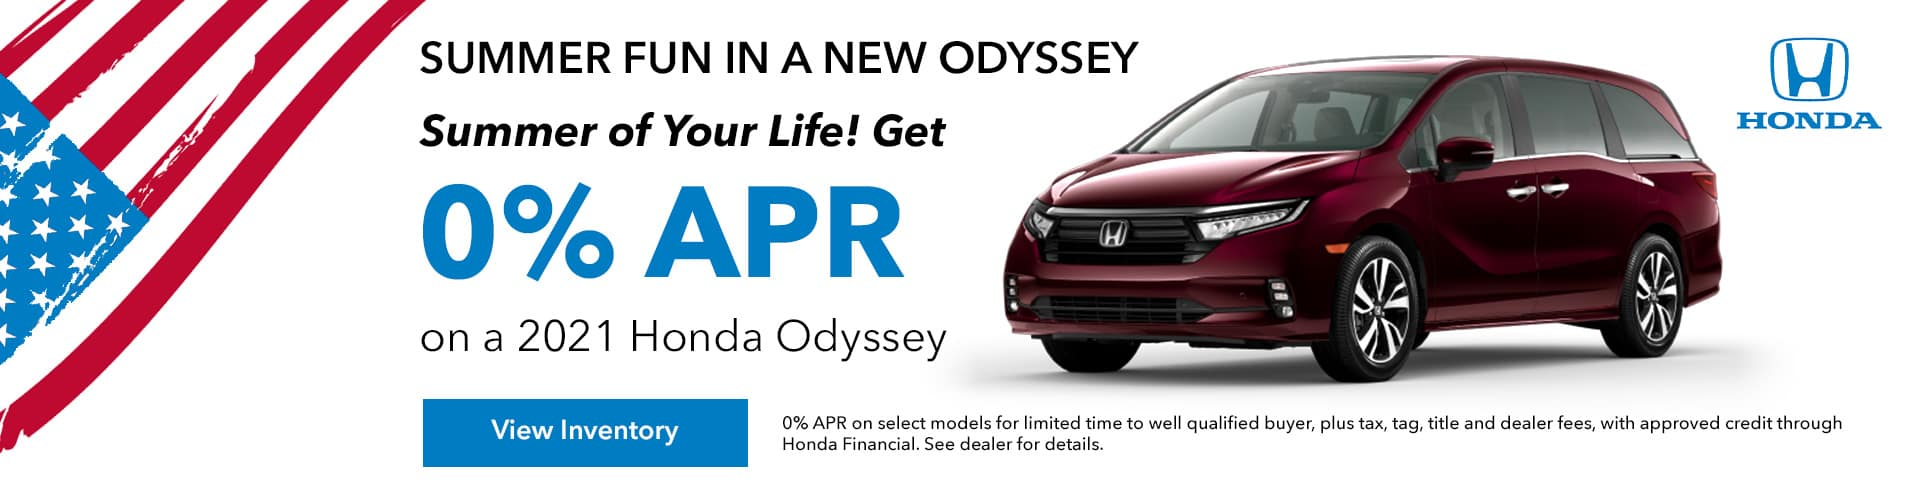 SUMMER FUN IN A NEW ODYSSEY, Get 0% APR For up to 72 Months